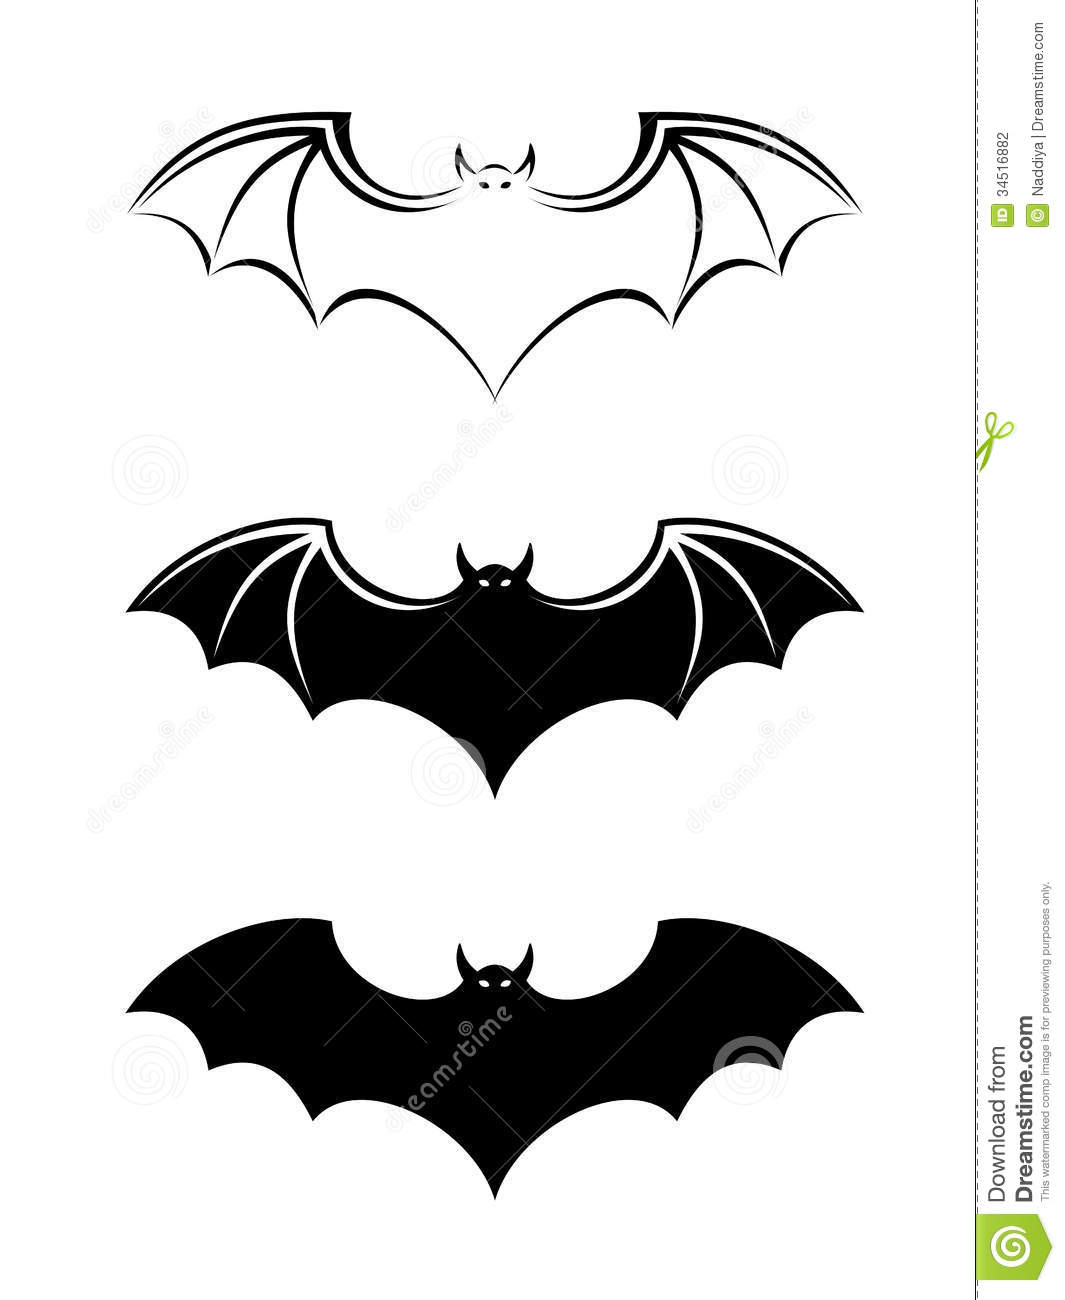 Bats Black Silhouettes Stock Vector Illustration Of